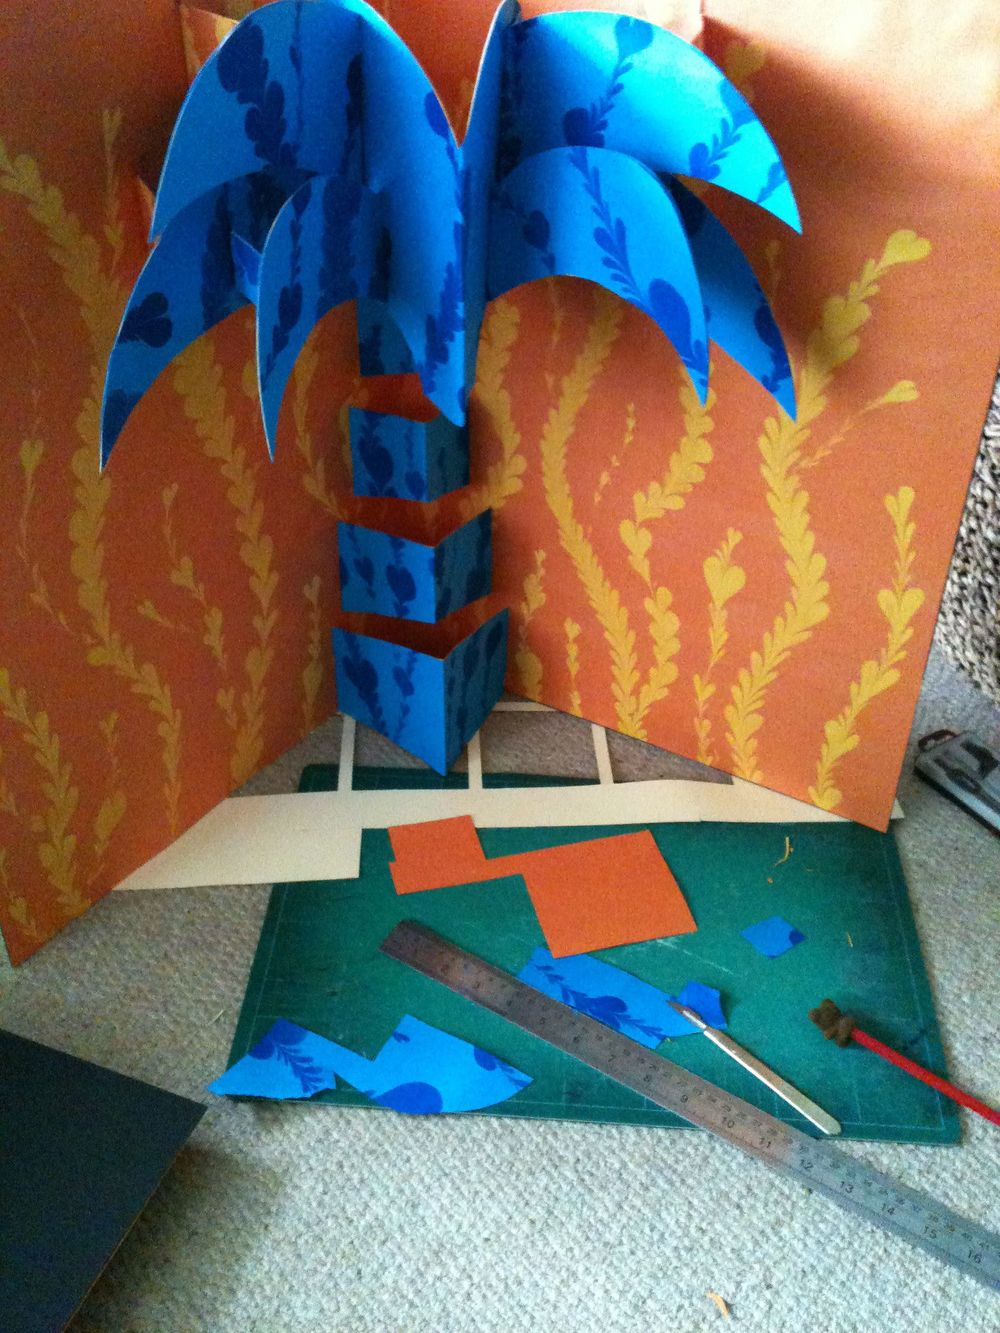 Hannah Kokoschka pop-up palm tree artwork